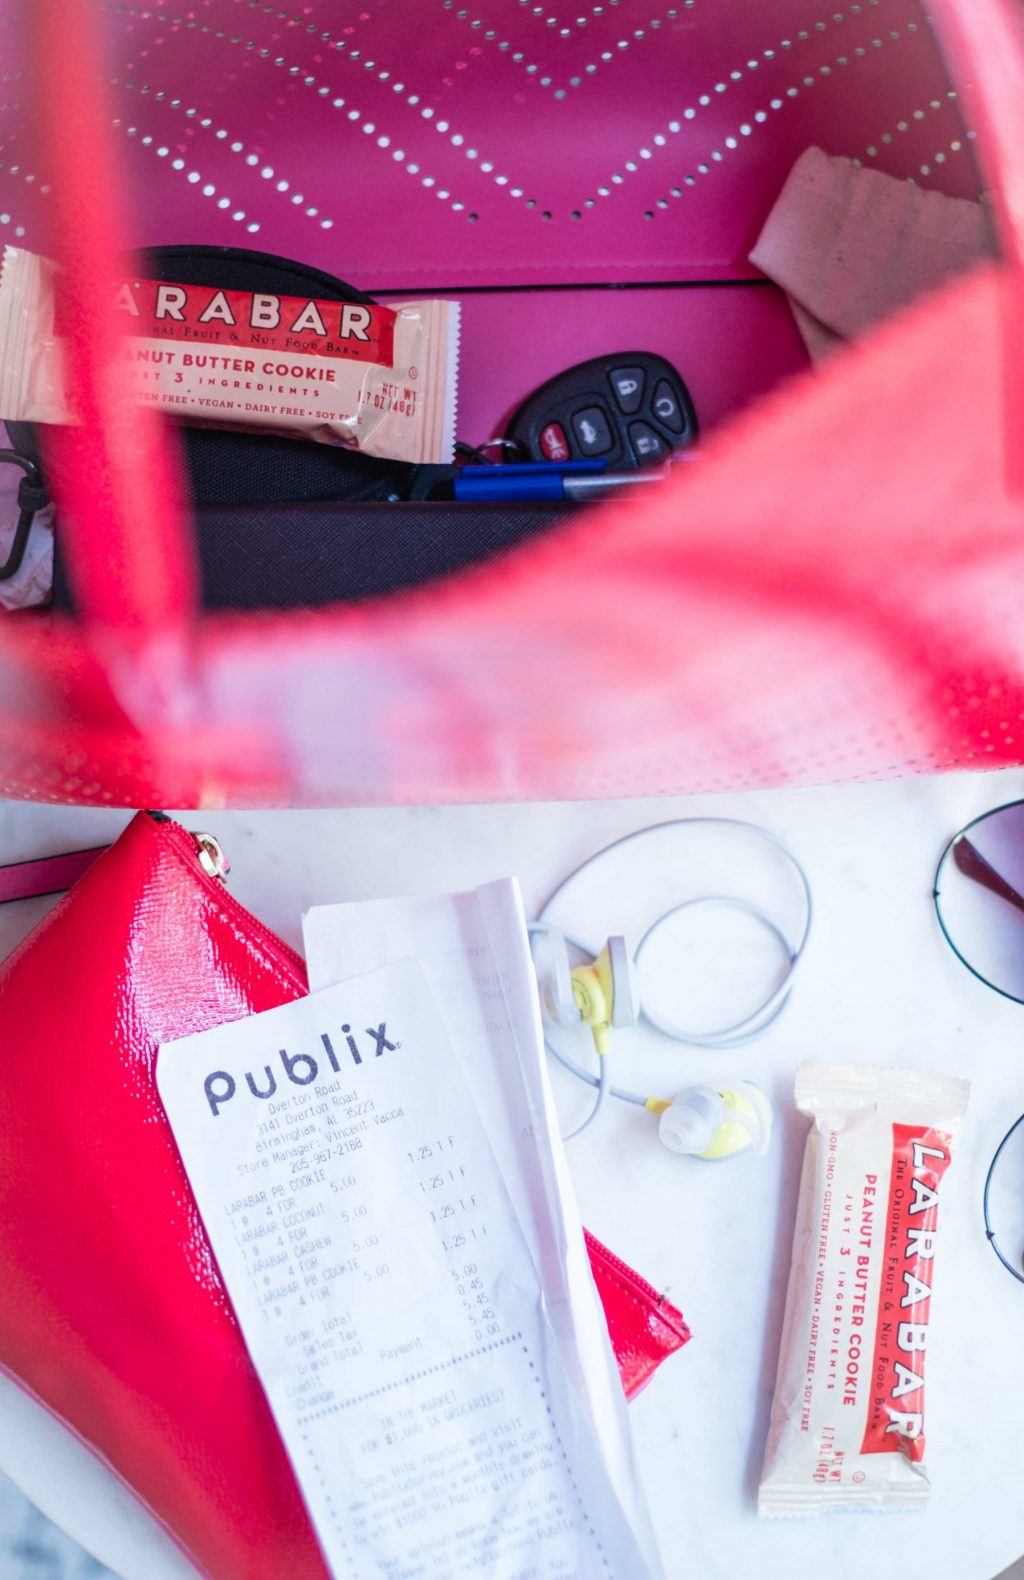 How I'm Staying On Track With My Fitness Goals #whatsavvysaid #wellness #fitness #larabar #publix